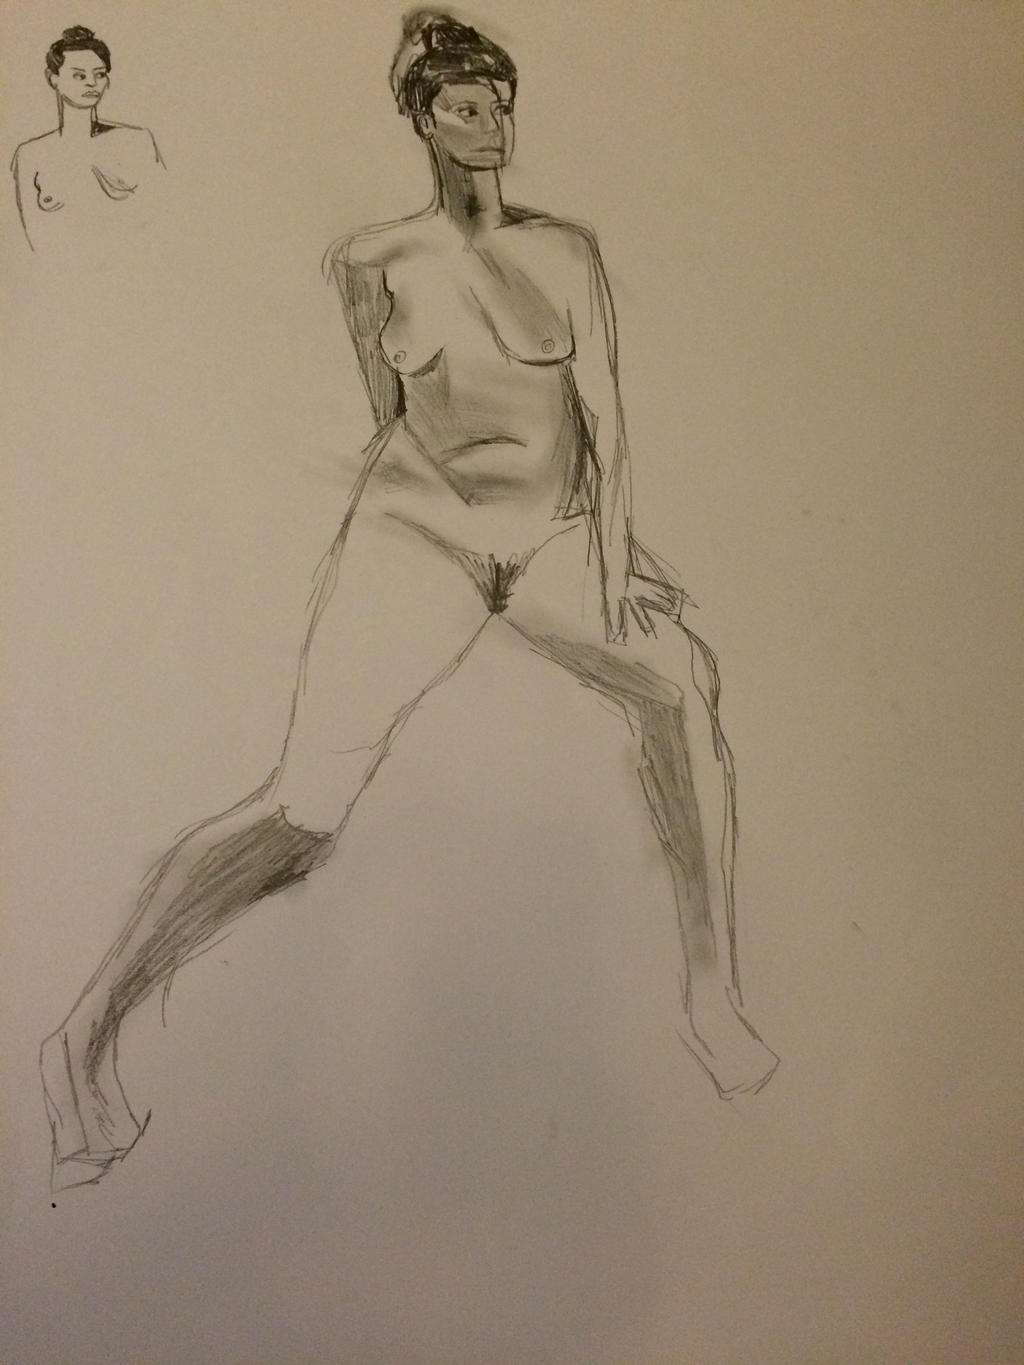 Life drawing 4 by heybeliever